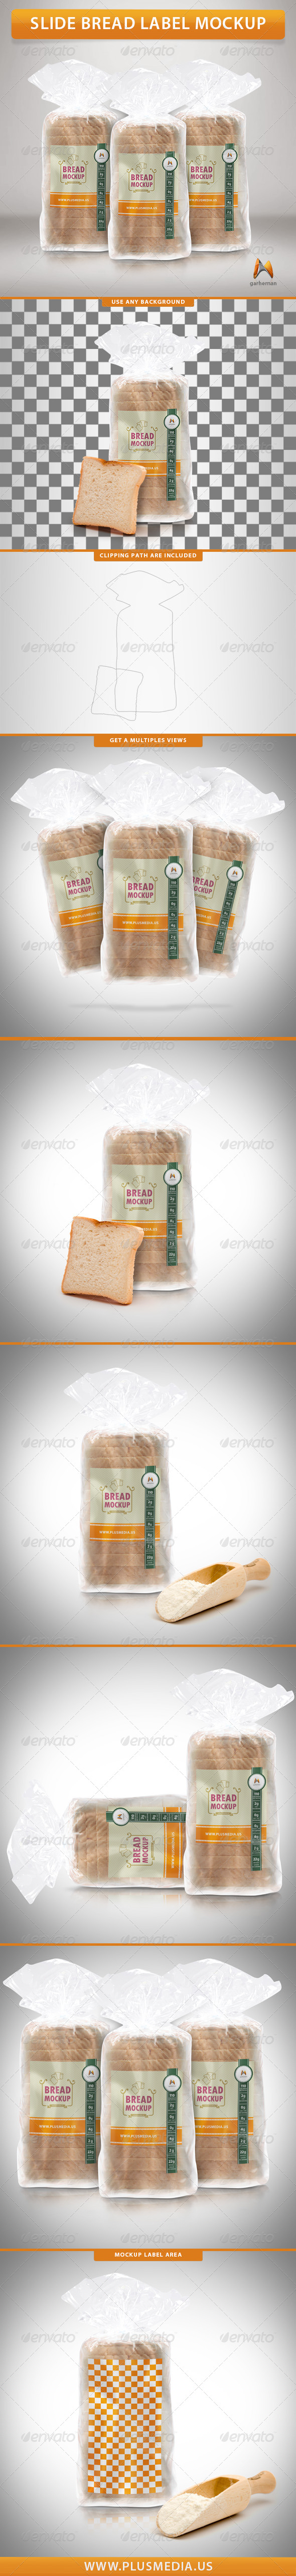 GraphicRiver Slide Bread Label Mockup 7815205